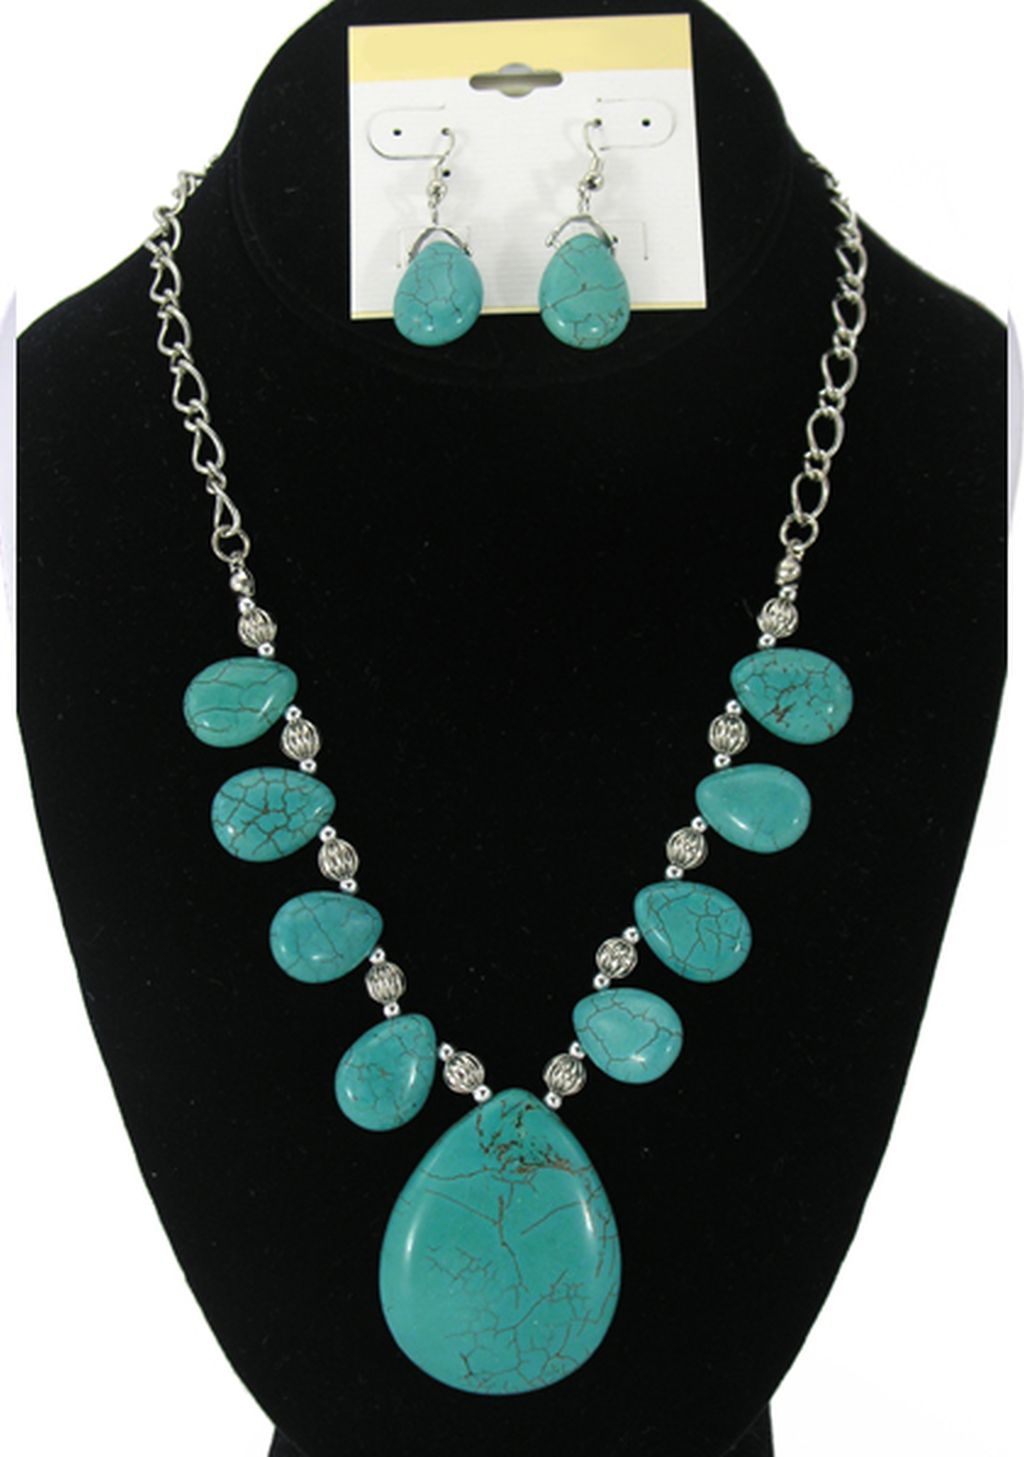 Turquoise Genuine Stones, Large Pendant, Set of Necklace & Earrings, Anti-allergic Metal Chain & Beads